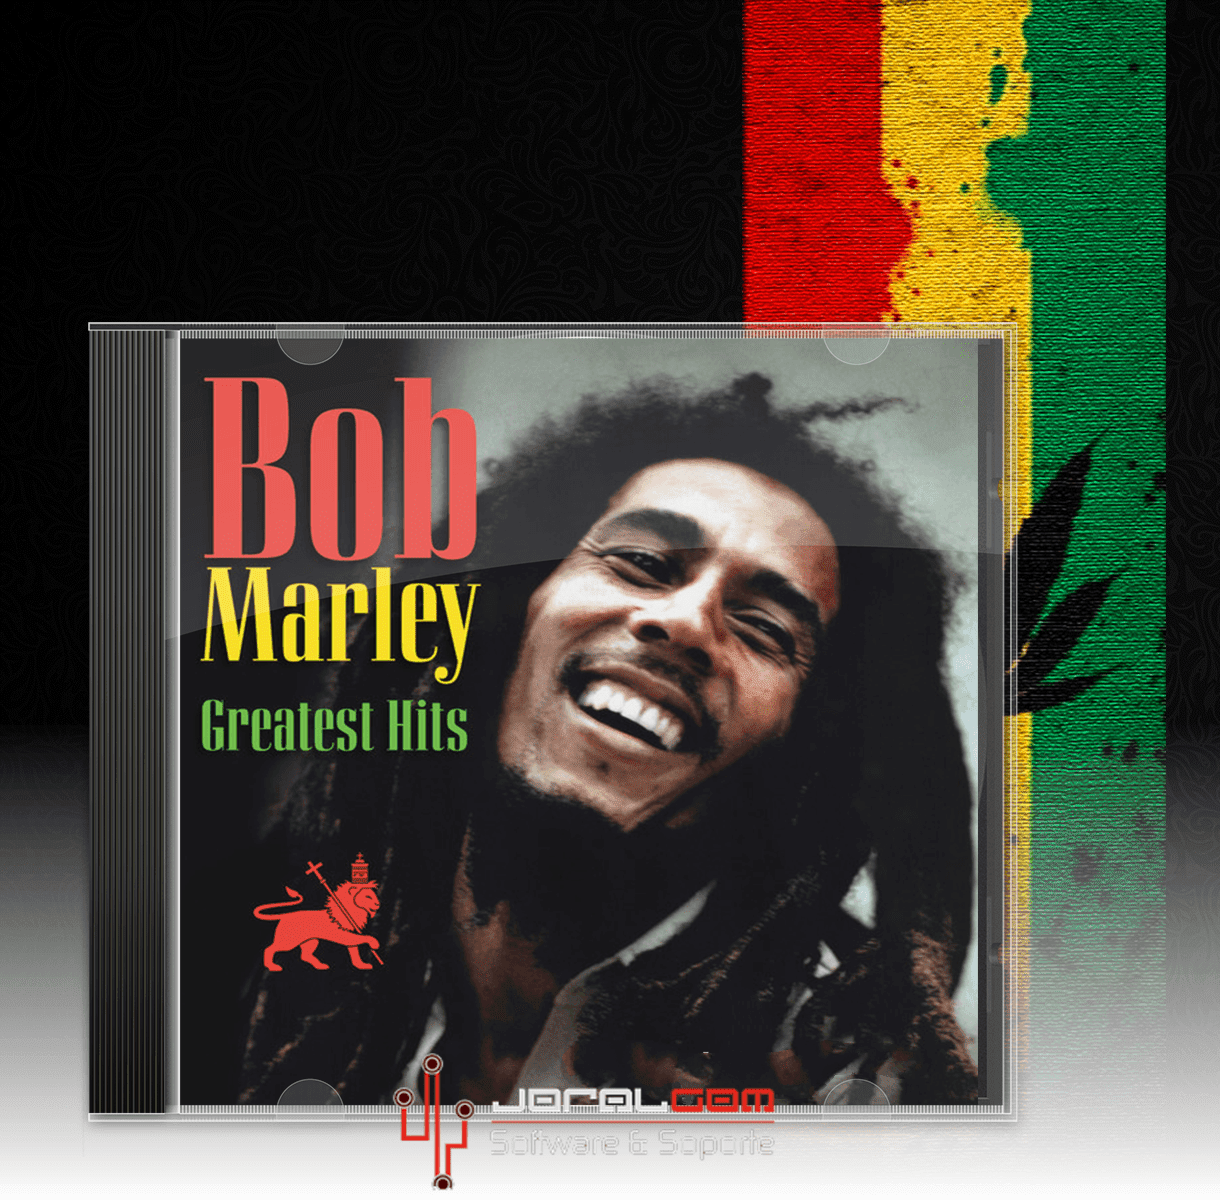 Bob Marley Cry Song Mp3 Download: Greatest Hits